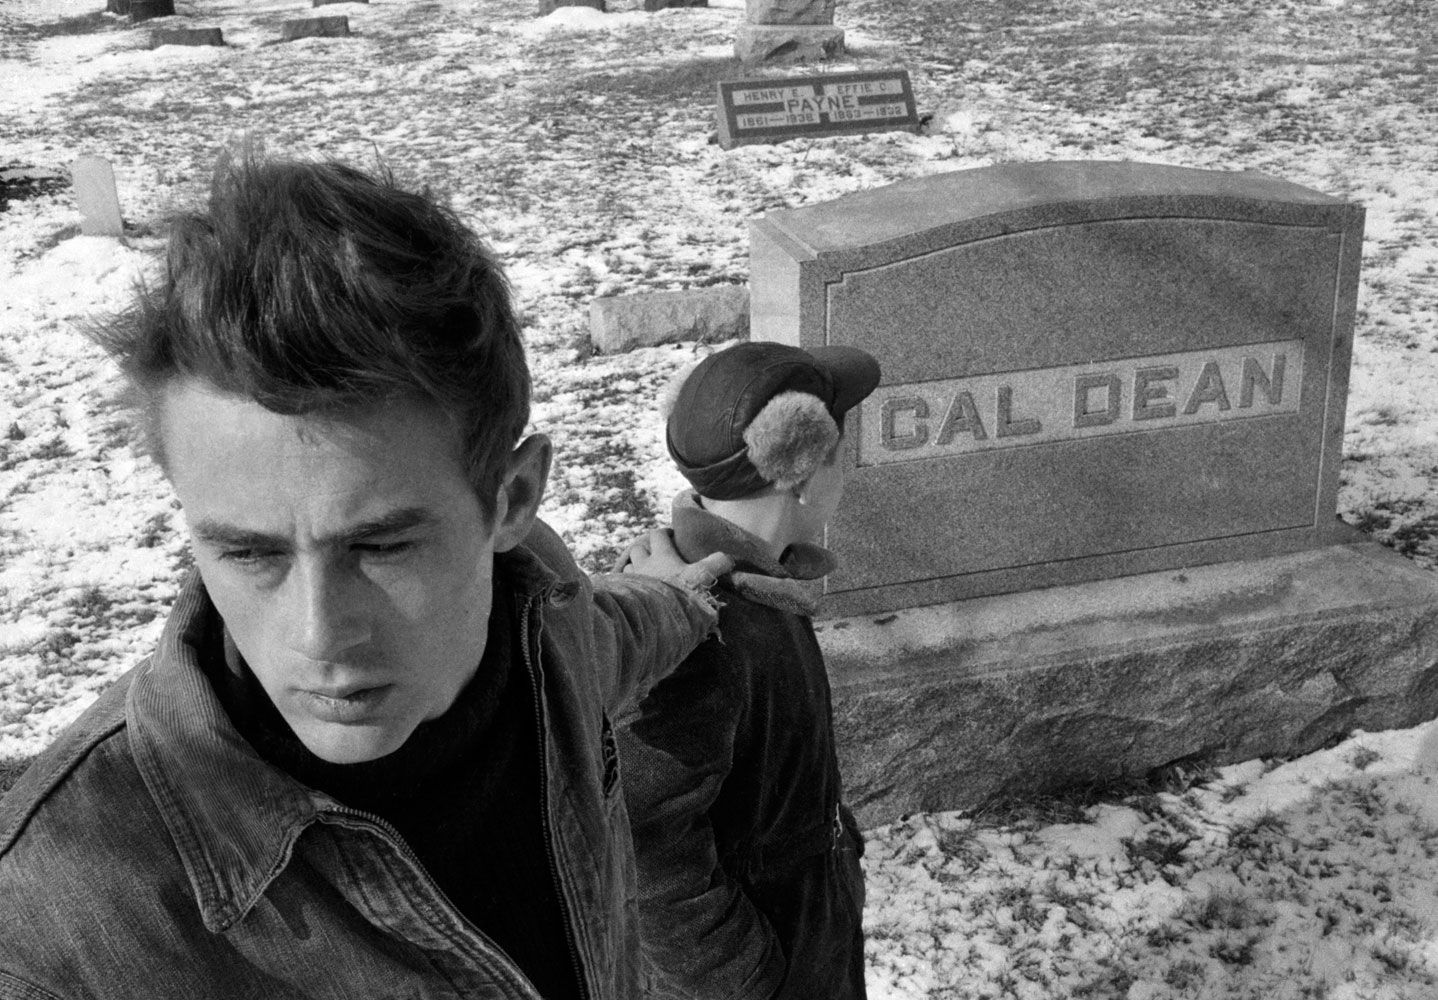 dennis stock james dean essay  dennis stock james dean essay